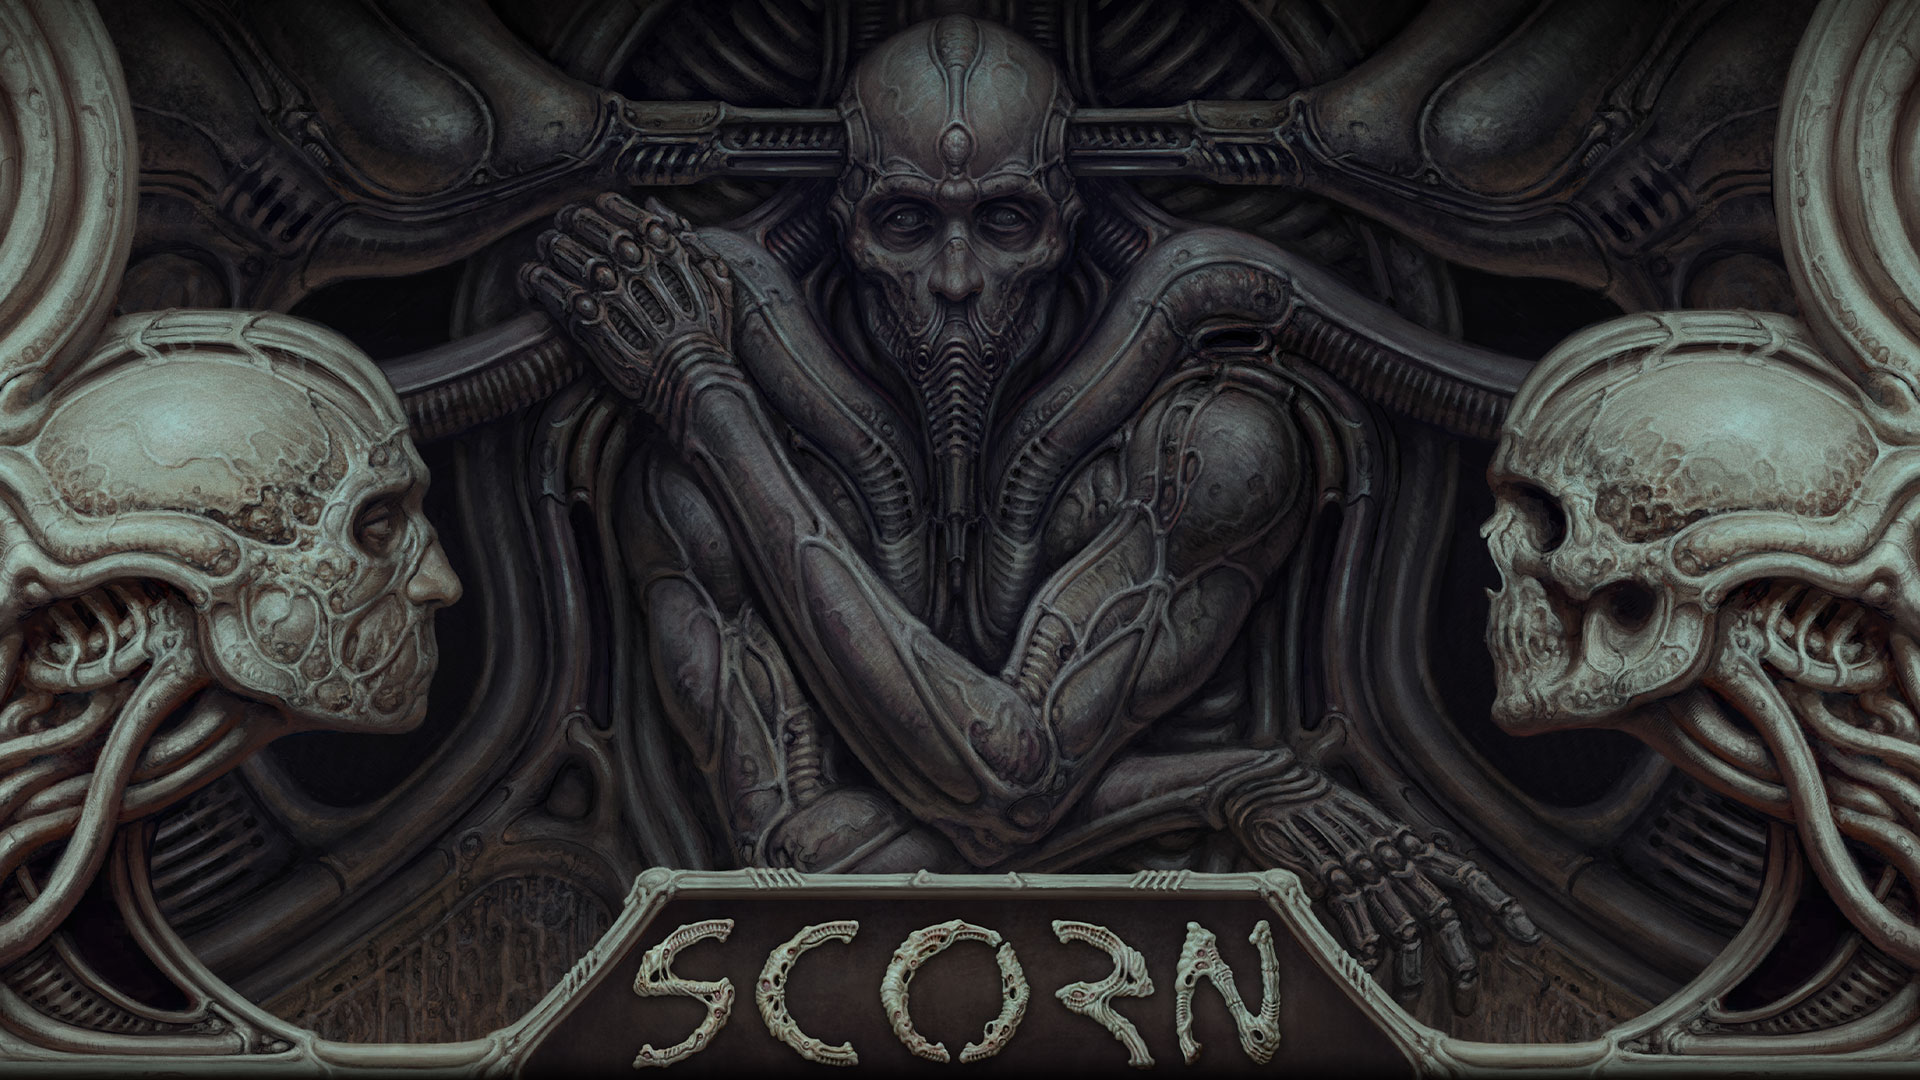 Character from Scorn embedded in a wall with two skull heads.